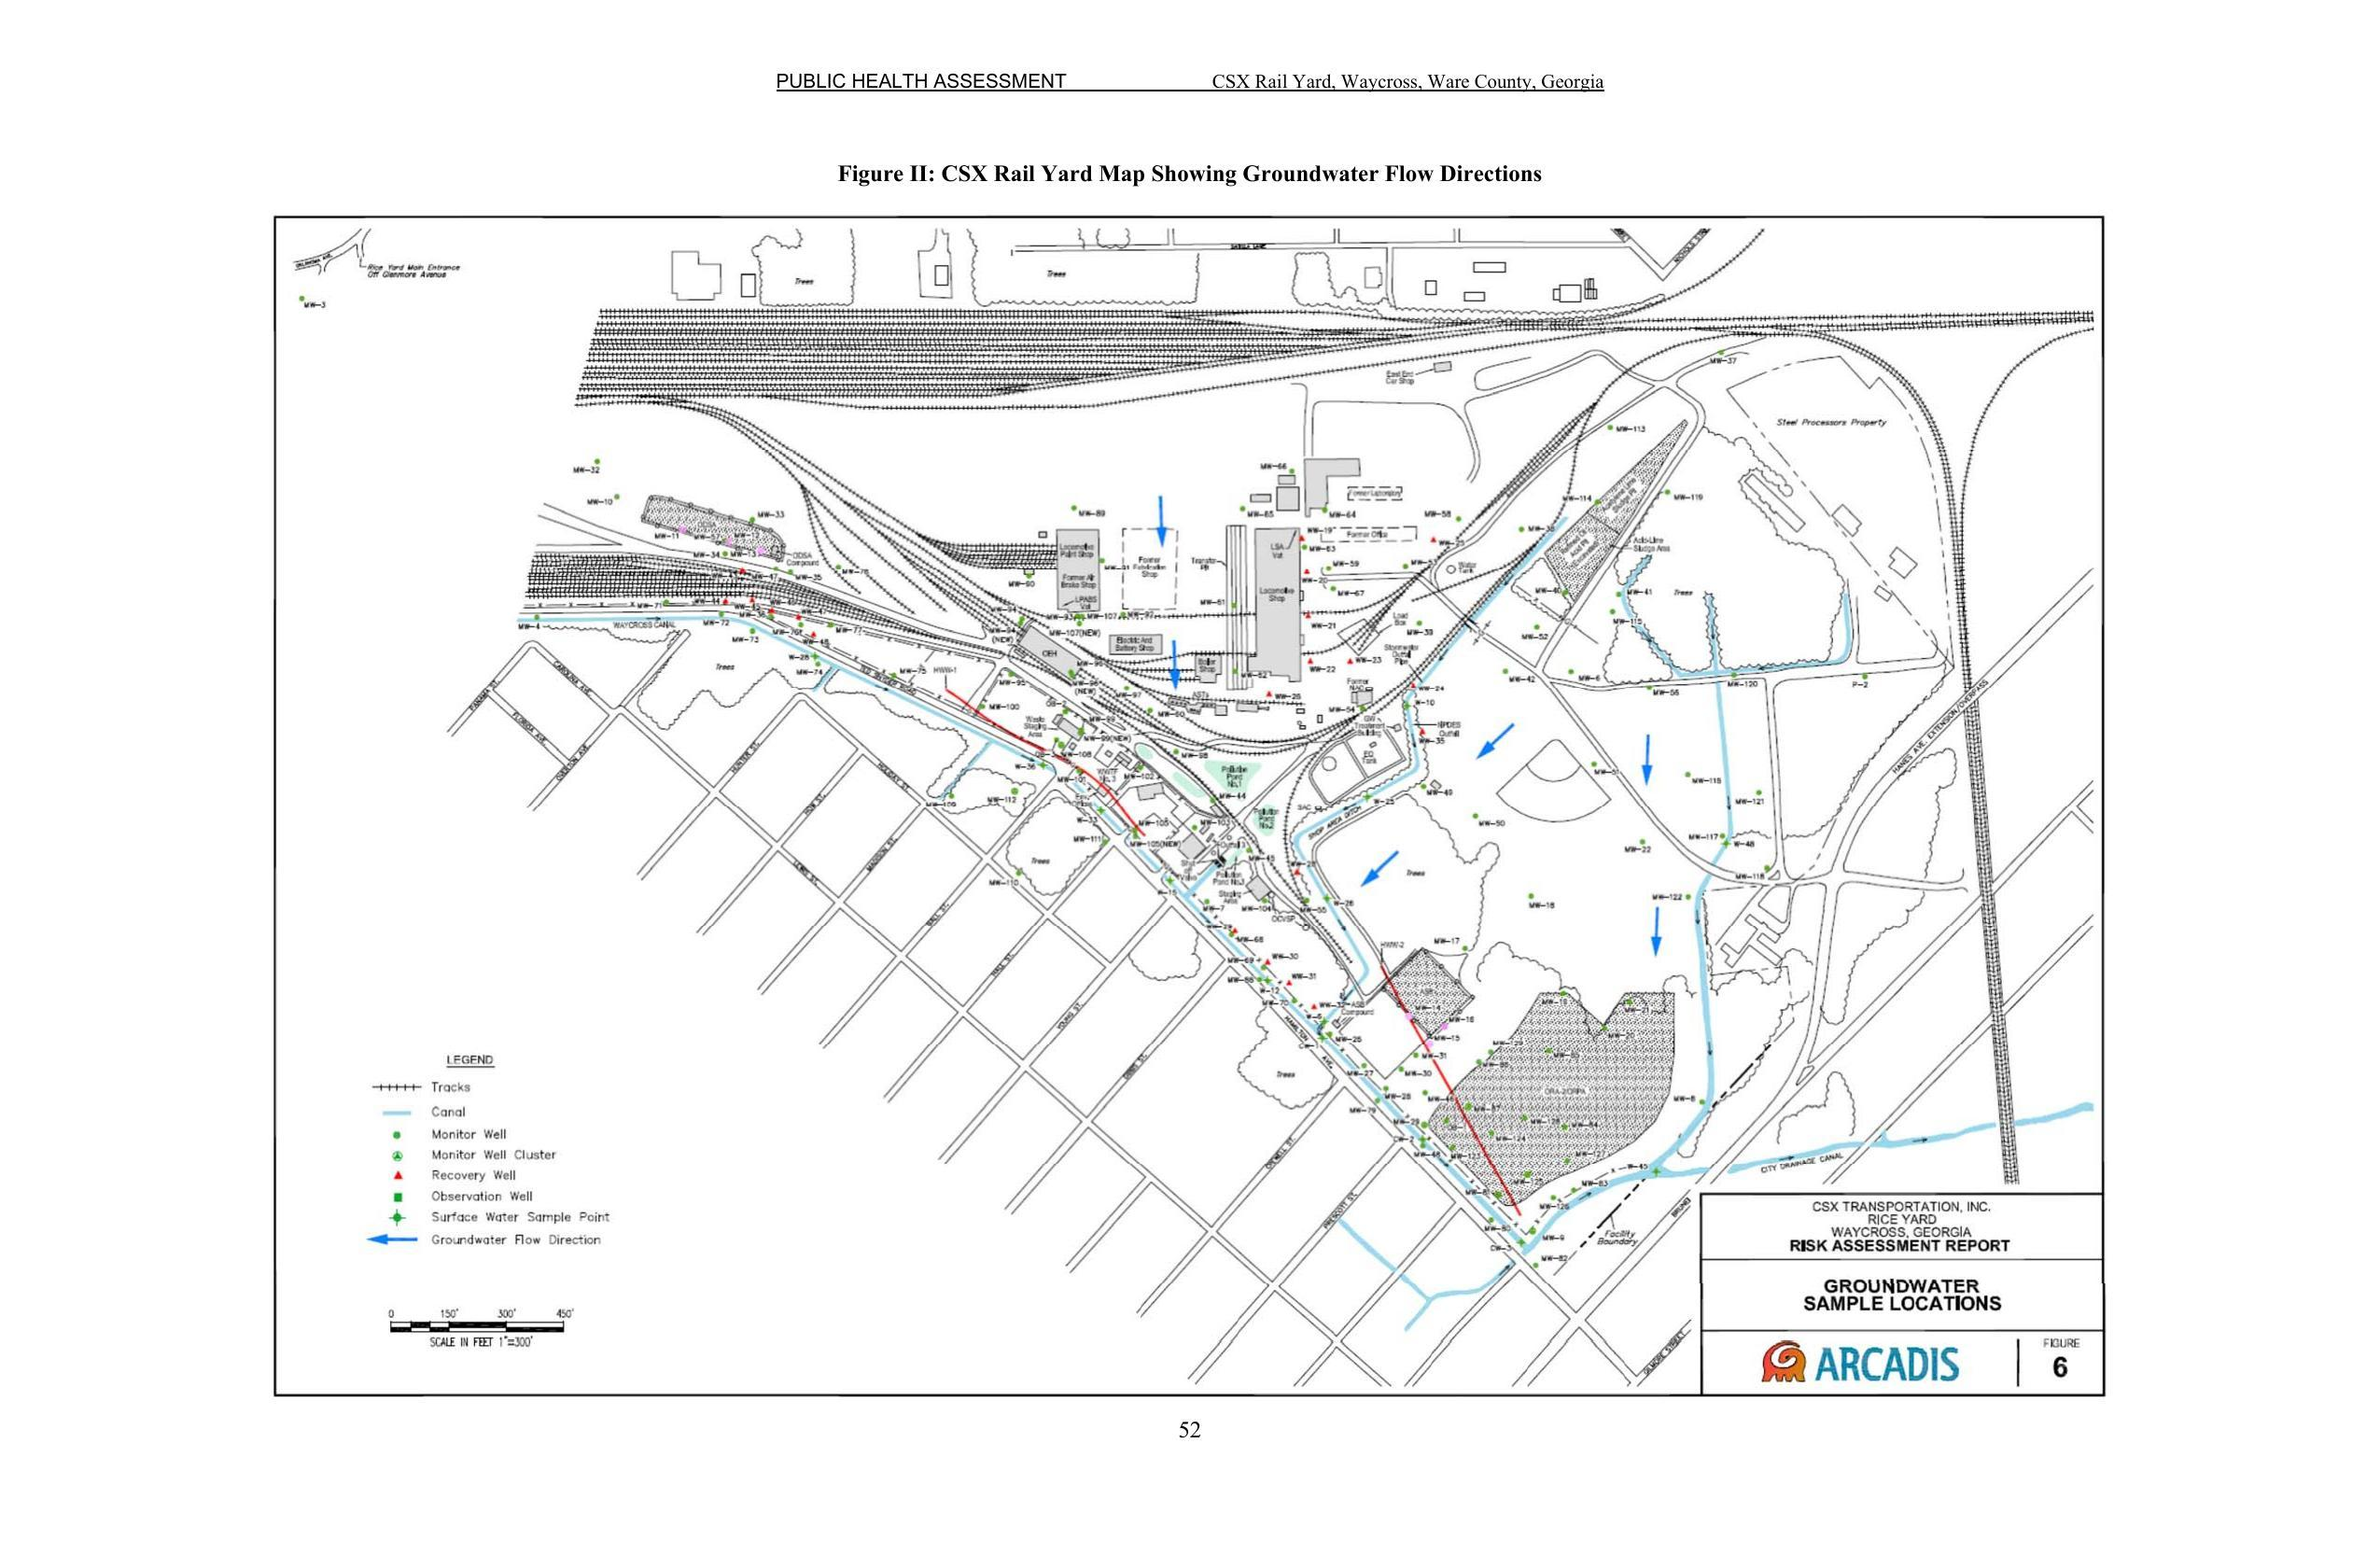 2550x1651 Figure II: CSX Rail Yard Map Showing Groundwater Flow Directions, Pages, in Public Health Assessment of Rice Rail Yard, Waycross, GA, by John S. Quarterman, for WWALS.net, 7 June 2018